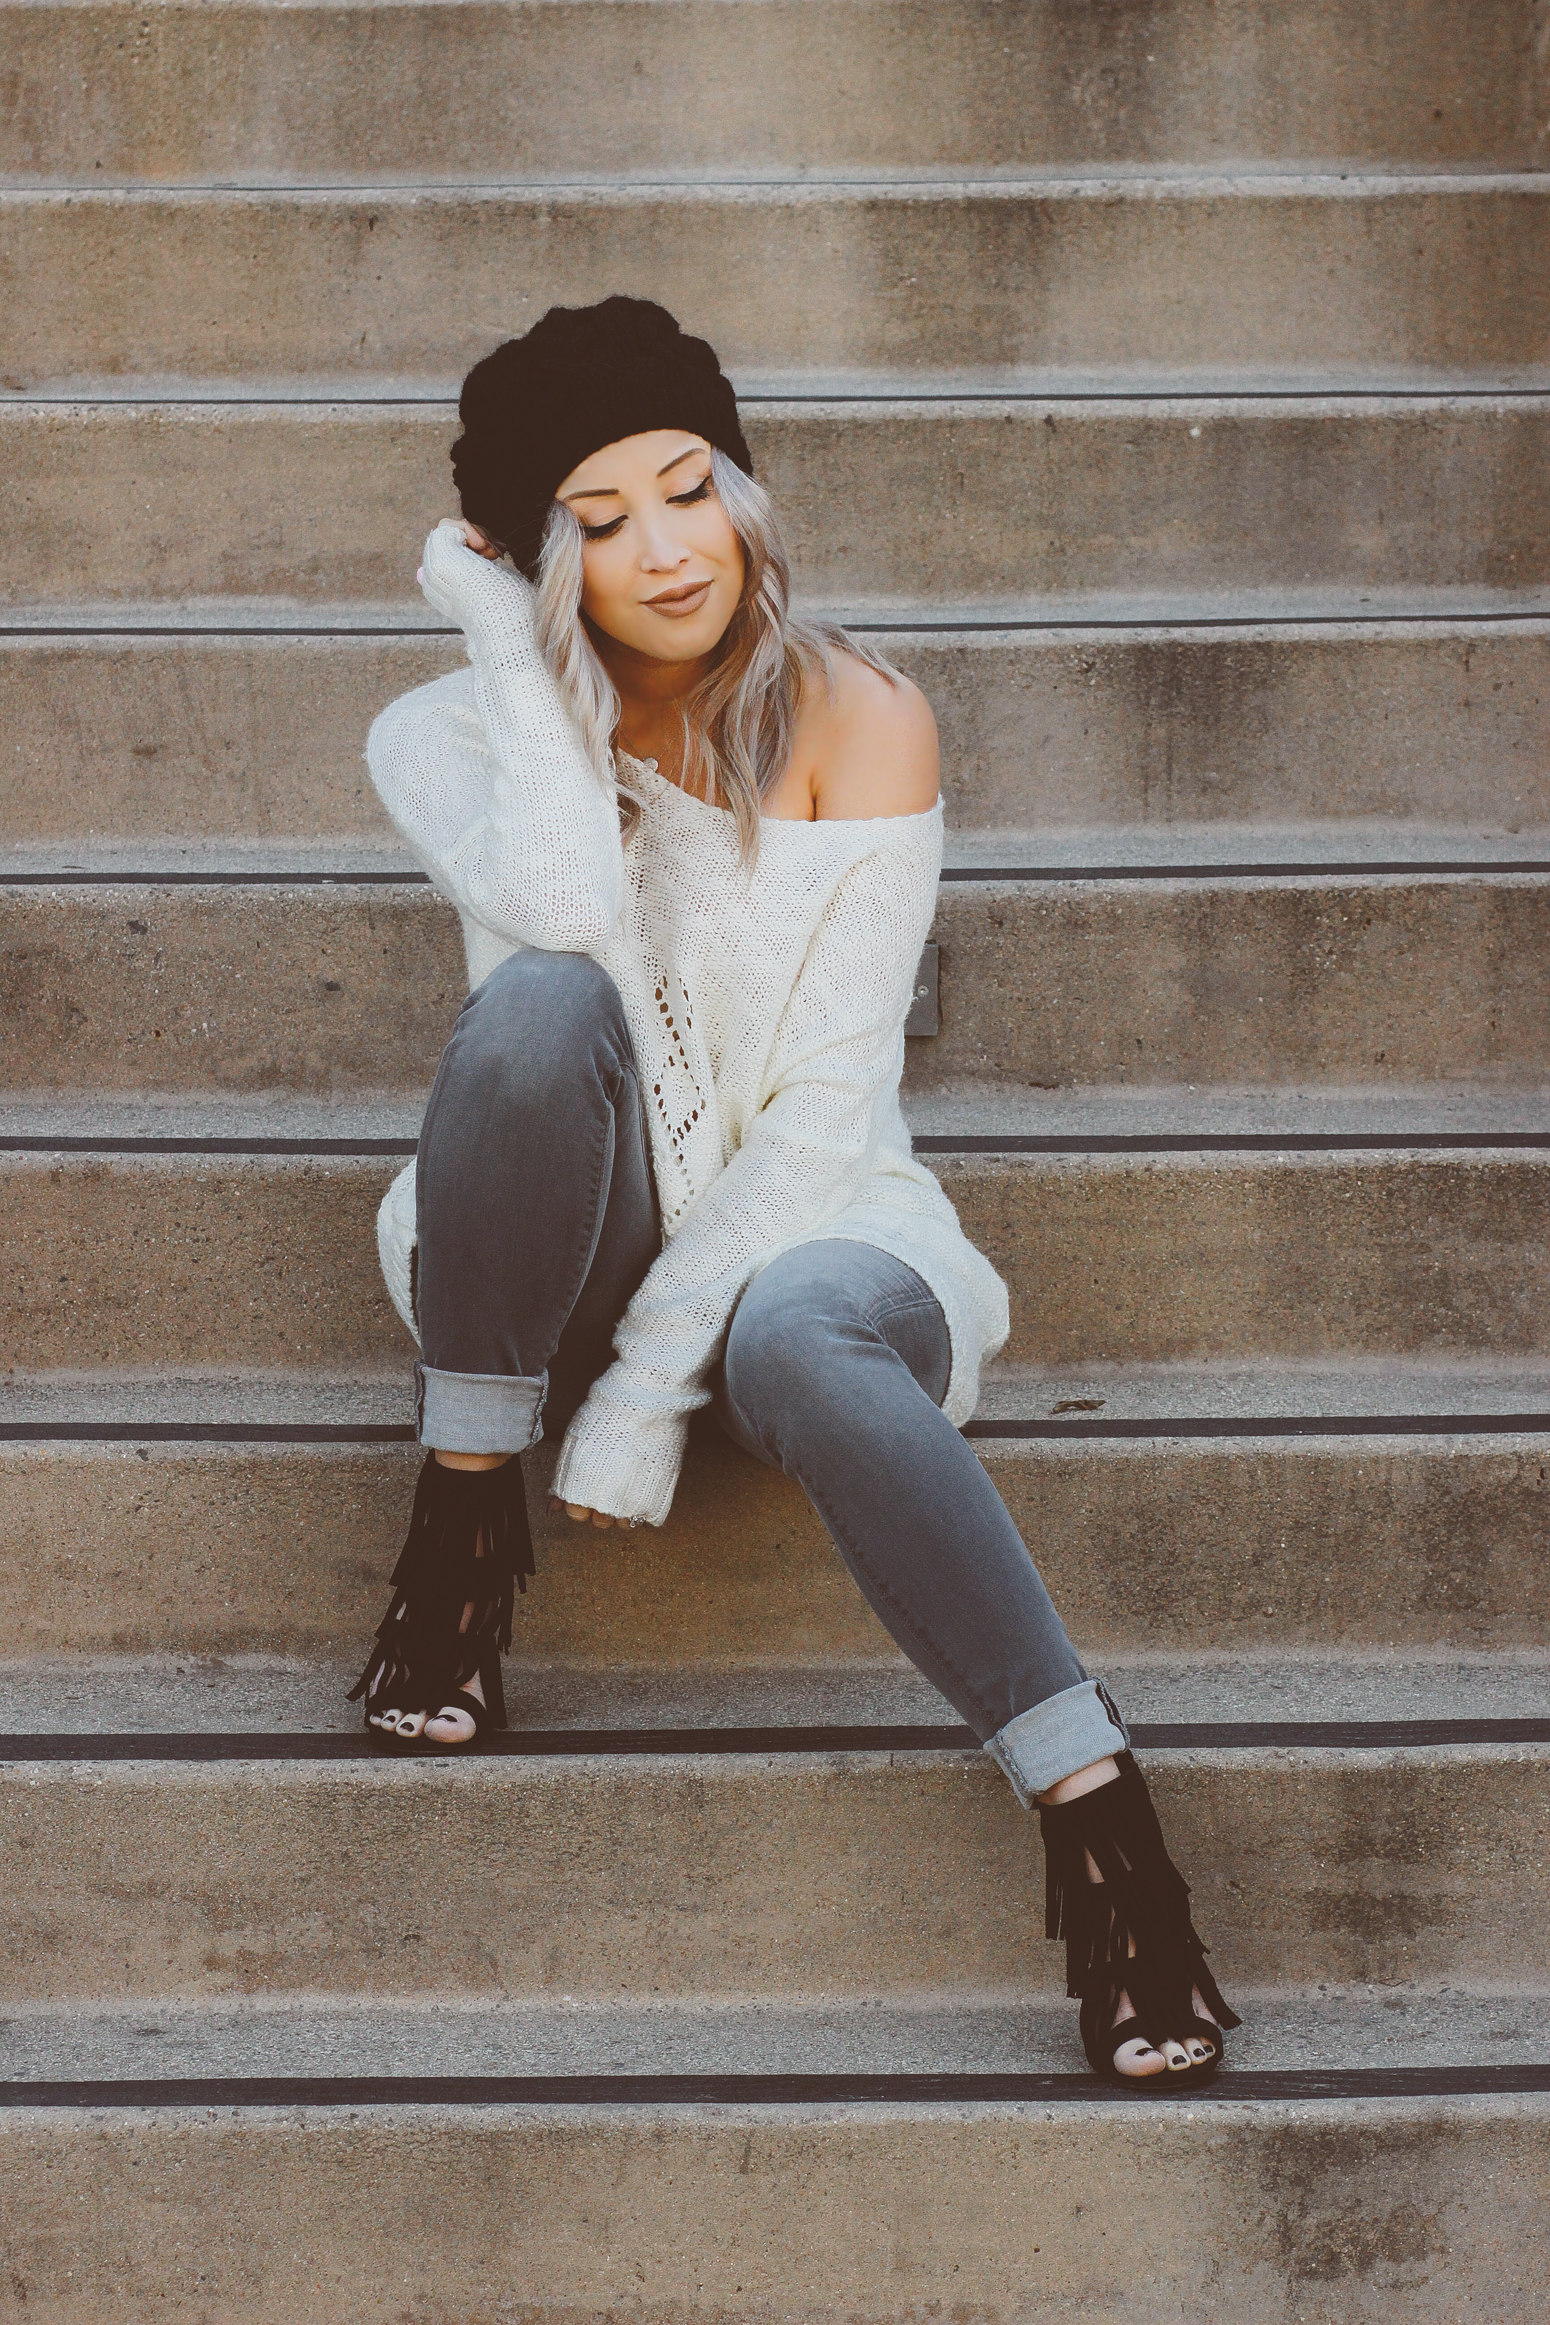 Blondie in the City | Sweater Weather | Off the Shoulder | Beanie Style | Hudson Jeans | Fringe Heels